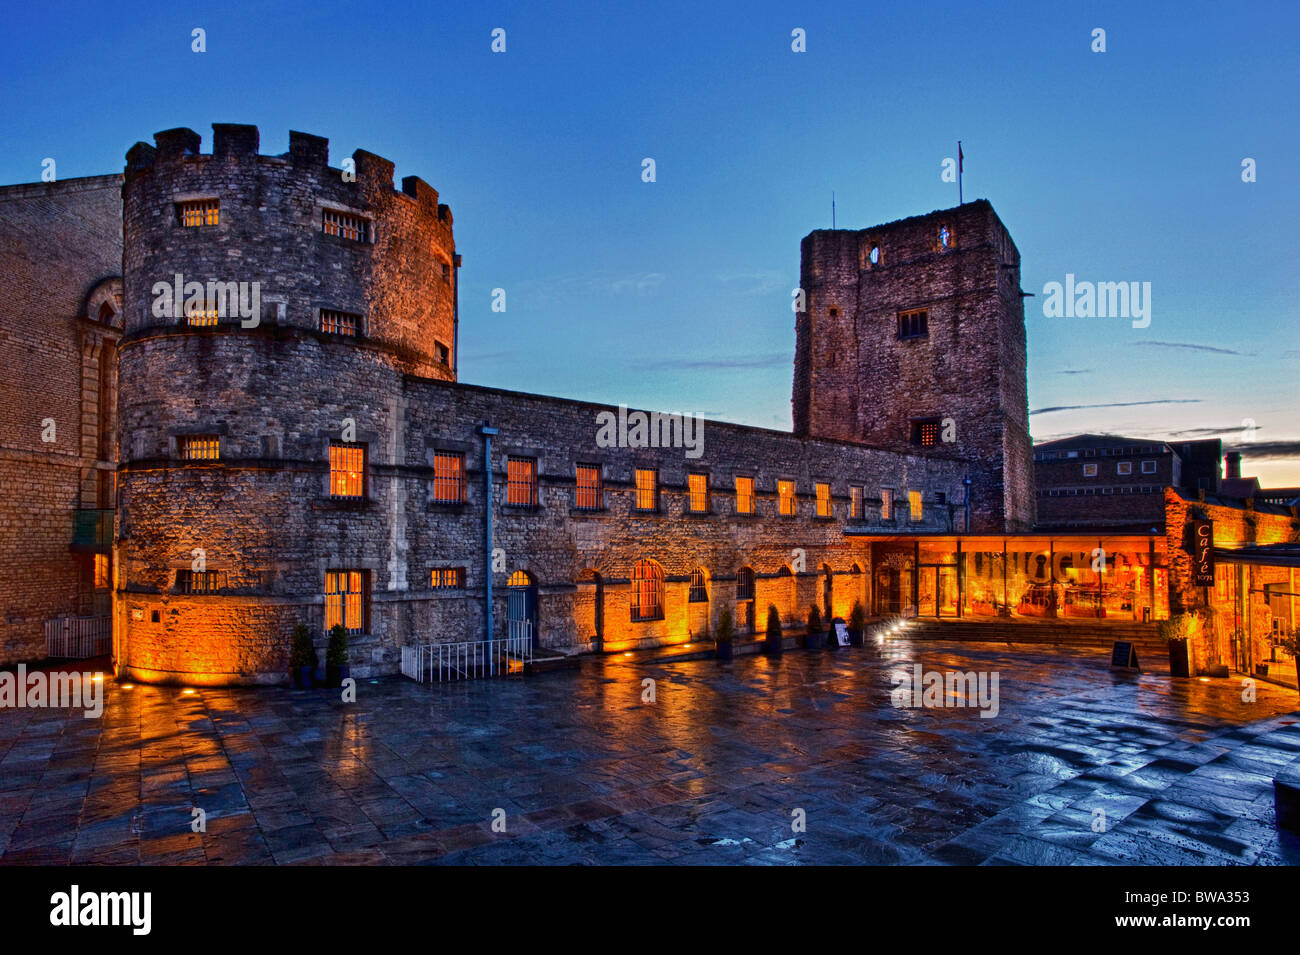 Oxford Castle And Former Prison Complex At Twilight Now A Hotel Visitor Centre